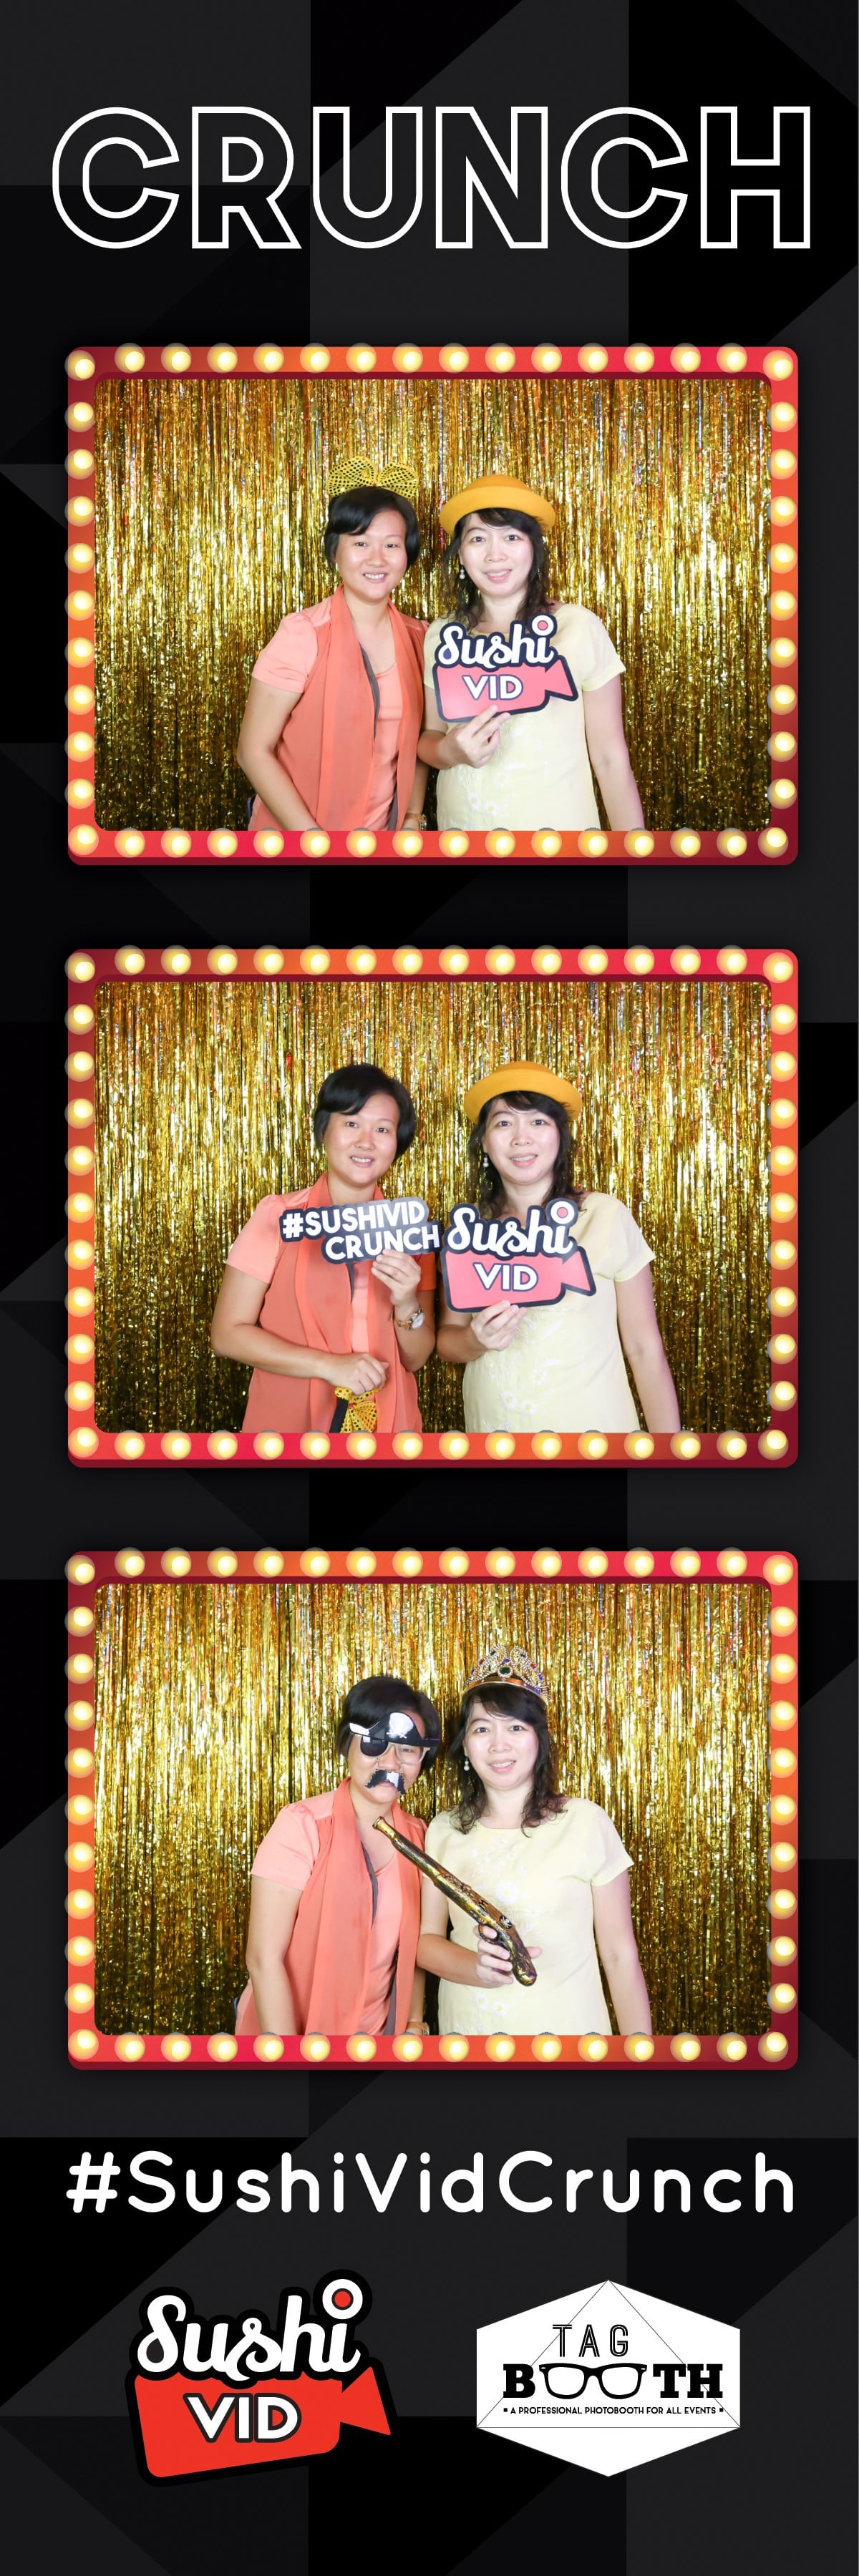 Sushivid+crunch+tagbooth1+35